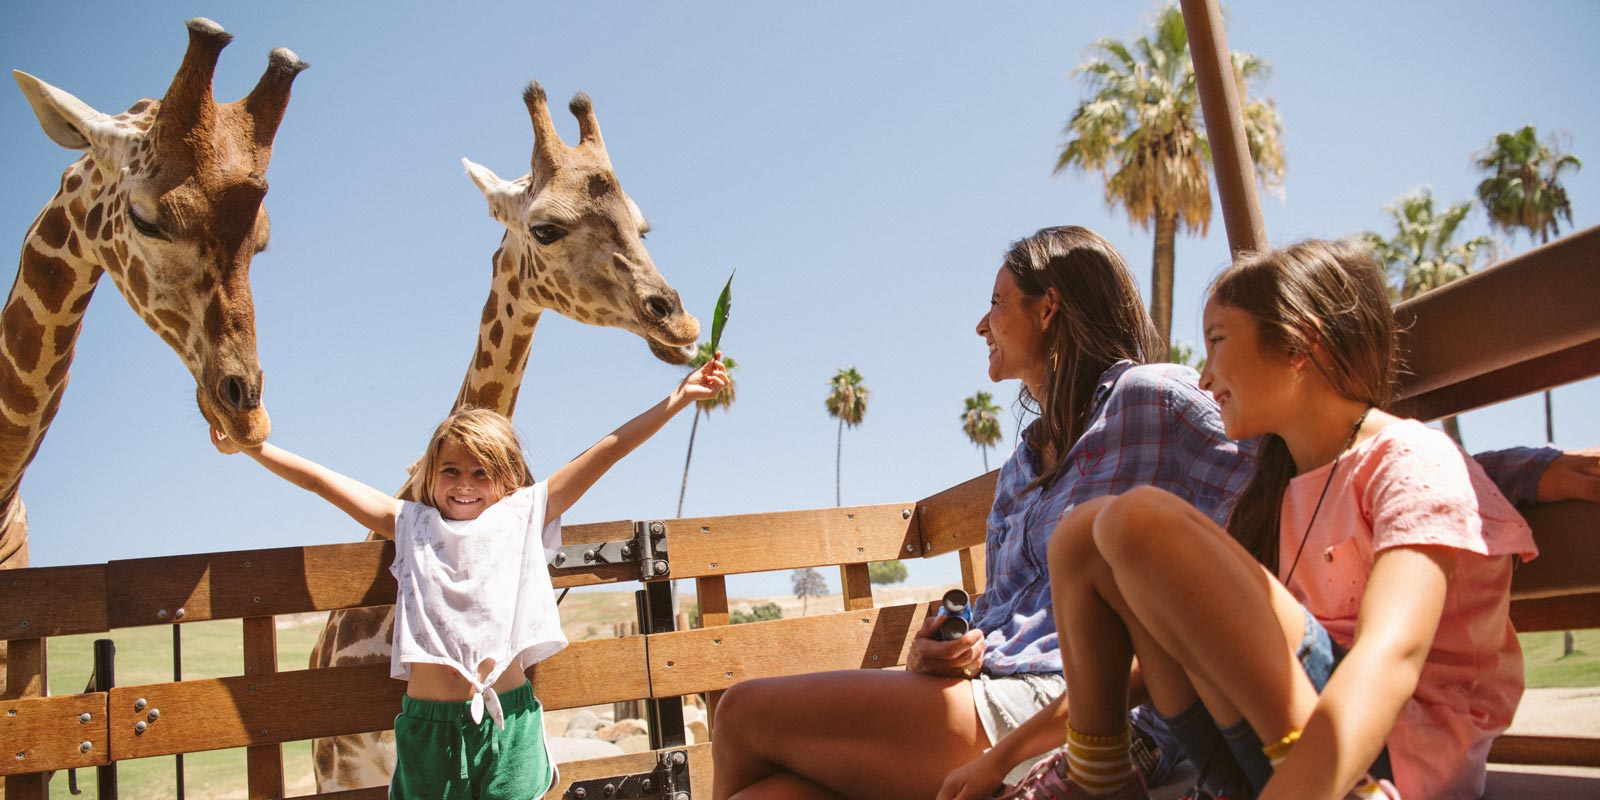 Family feeds giraffes at San Diego Zoo Safari park as attractions reopen